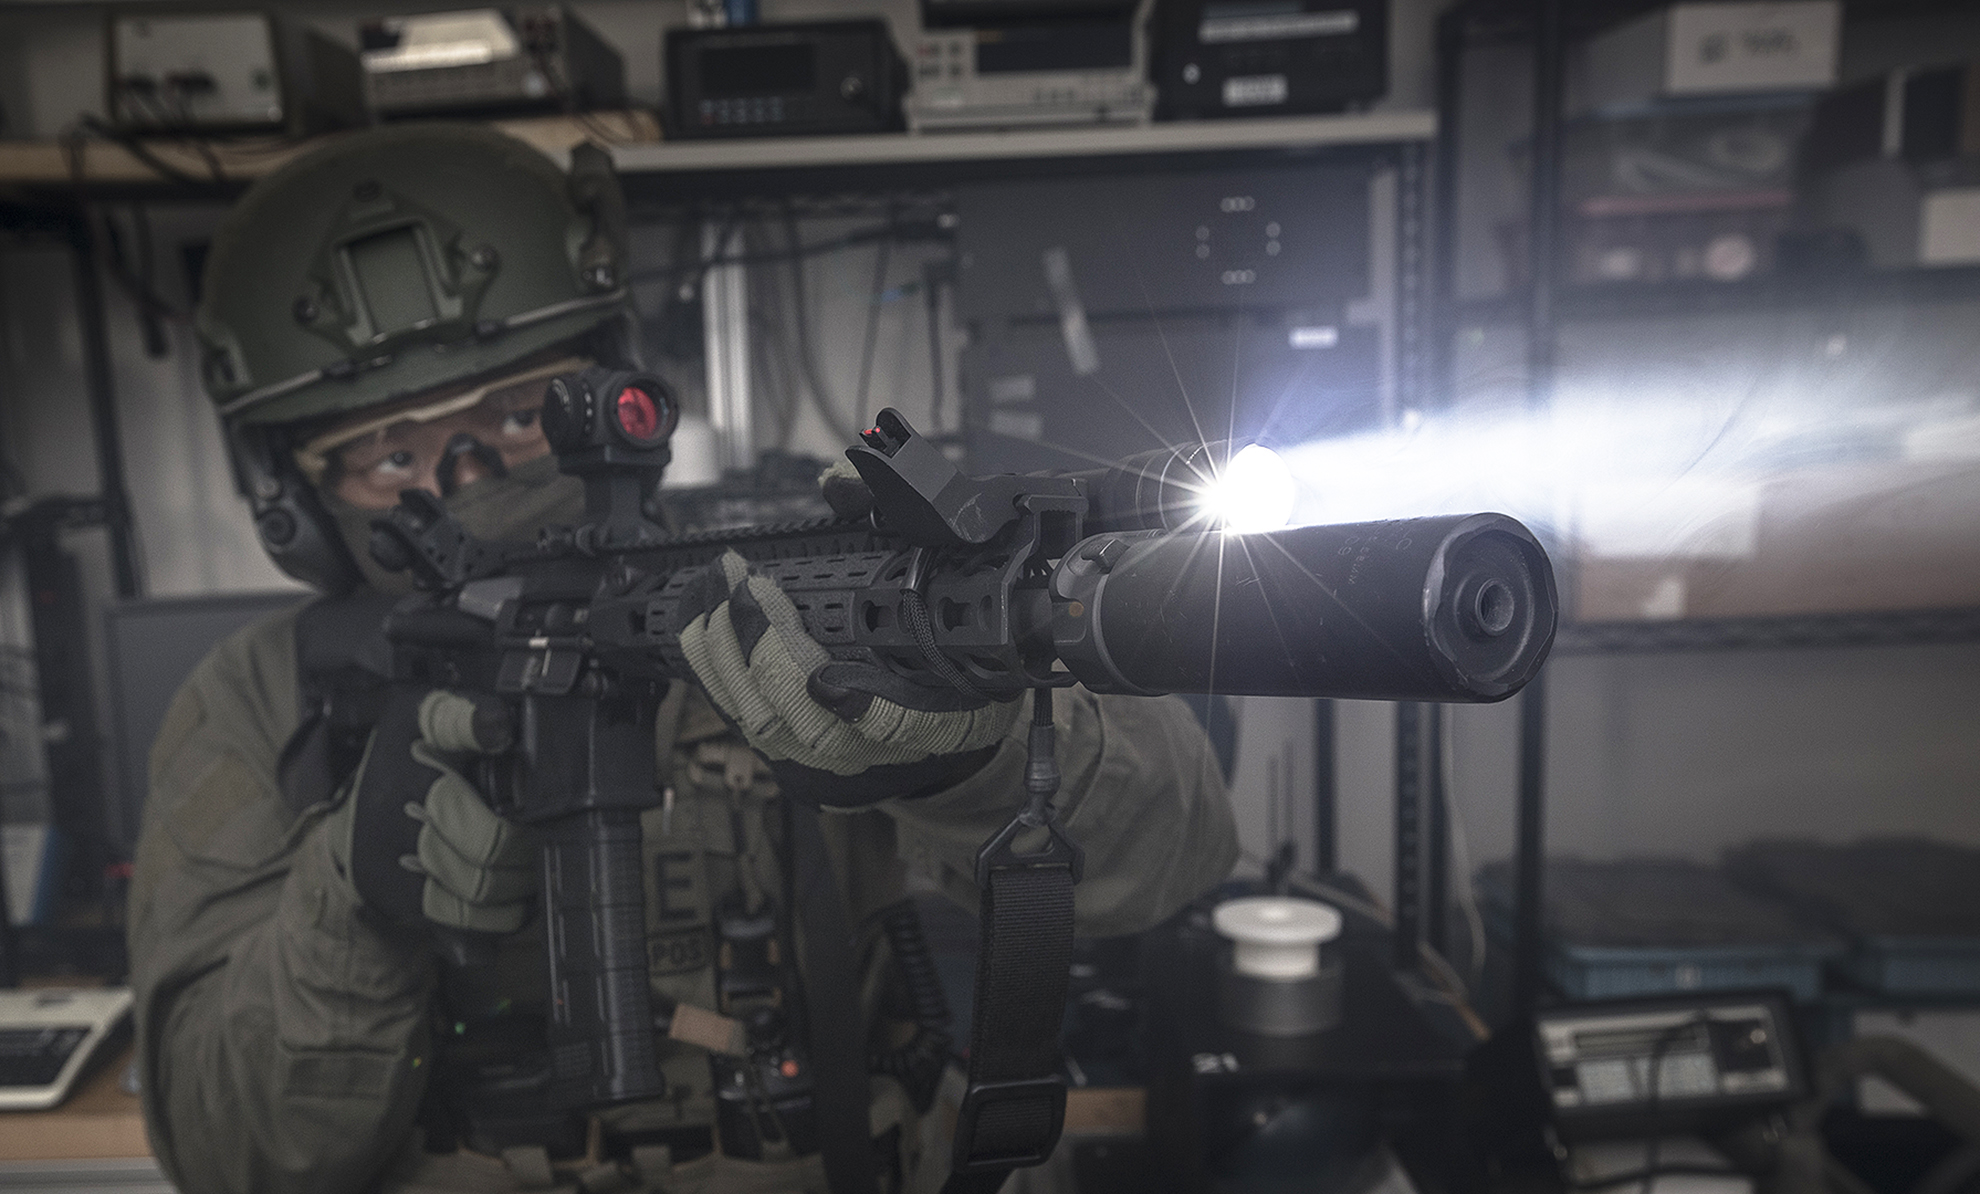 SureFire M600DF WeaponLight used by SWAT